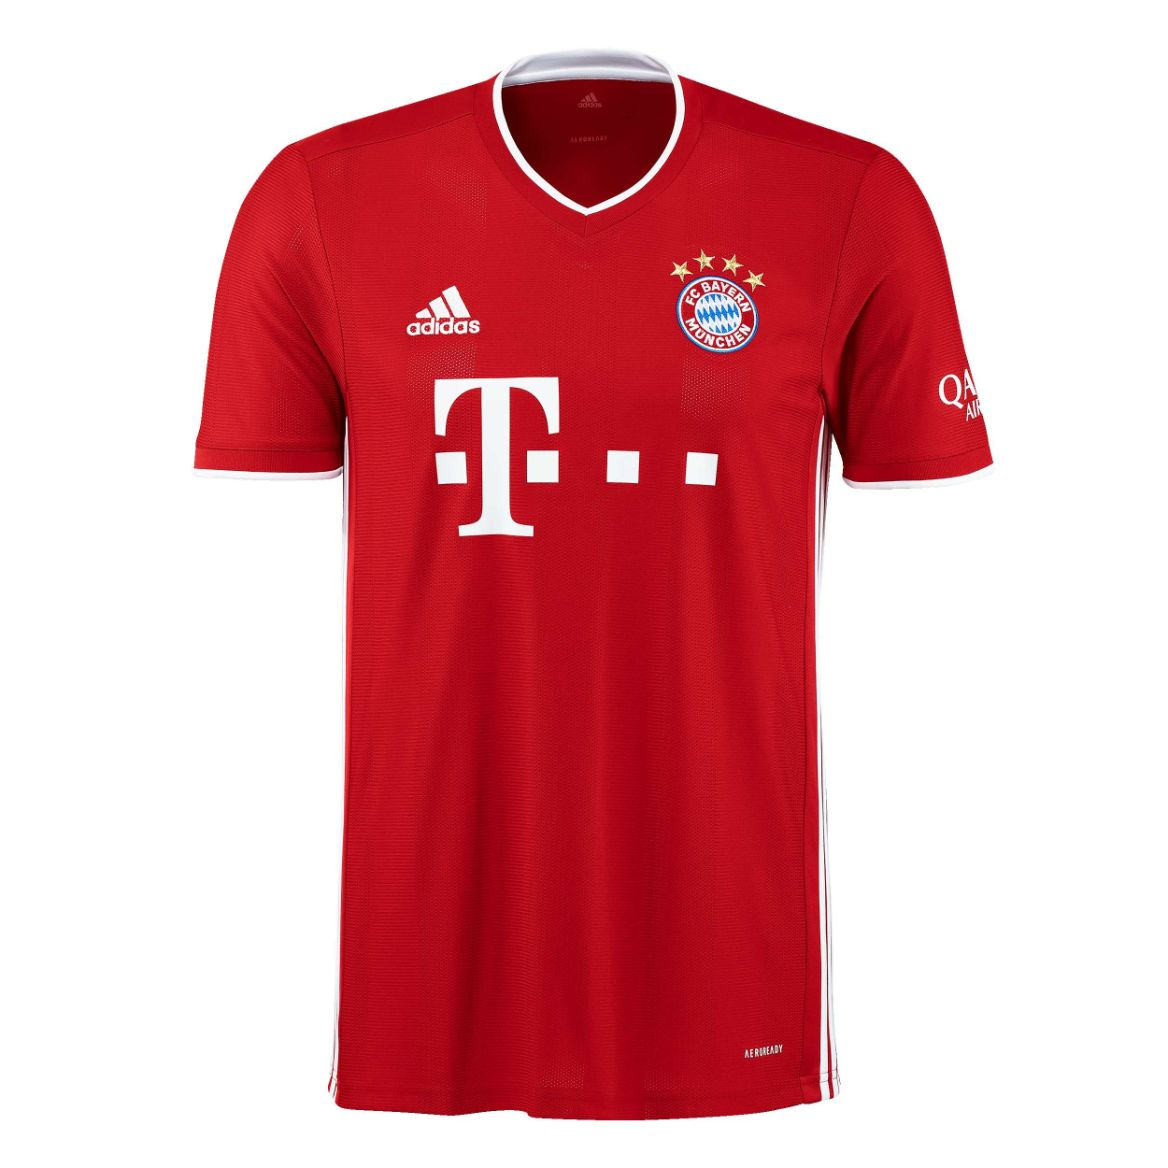 2020-2021 Bayern Munich Adidas Home Football Shirt Adidas